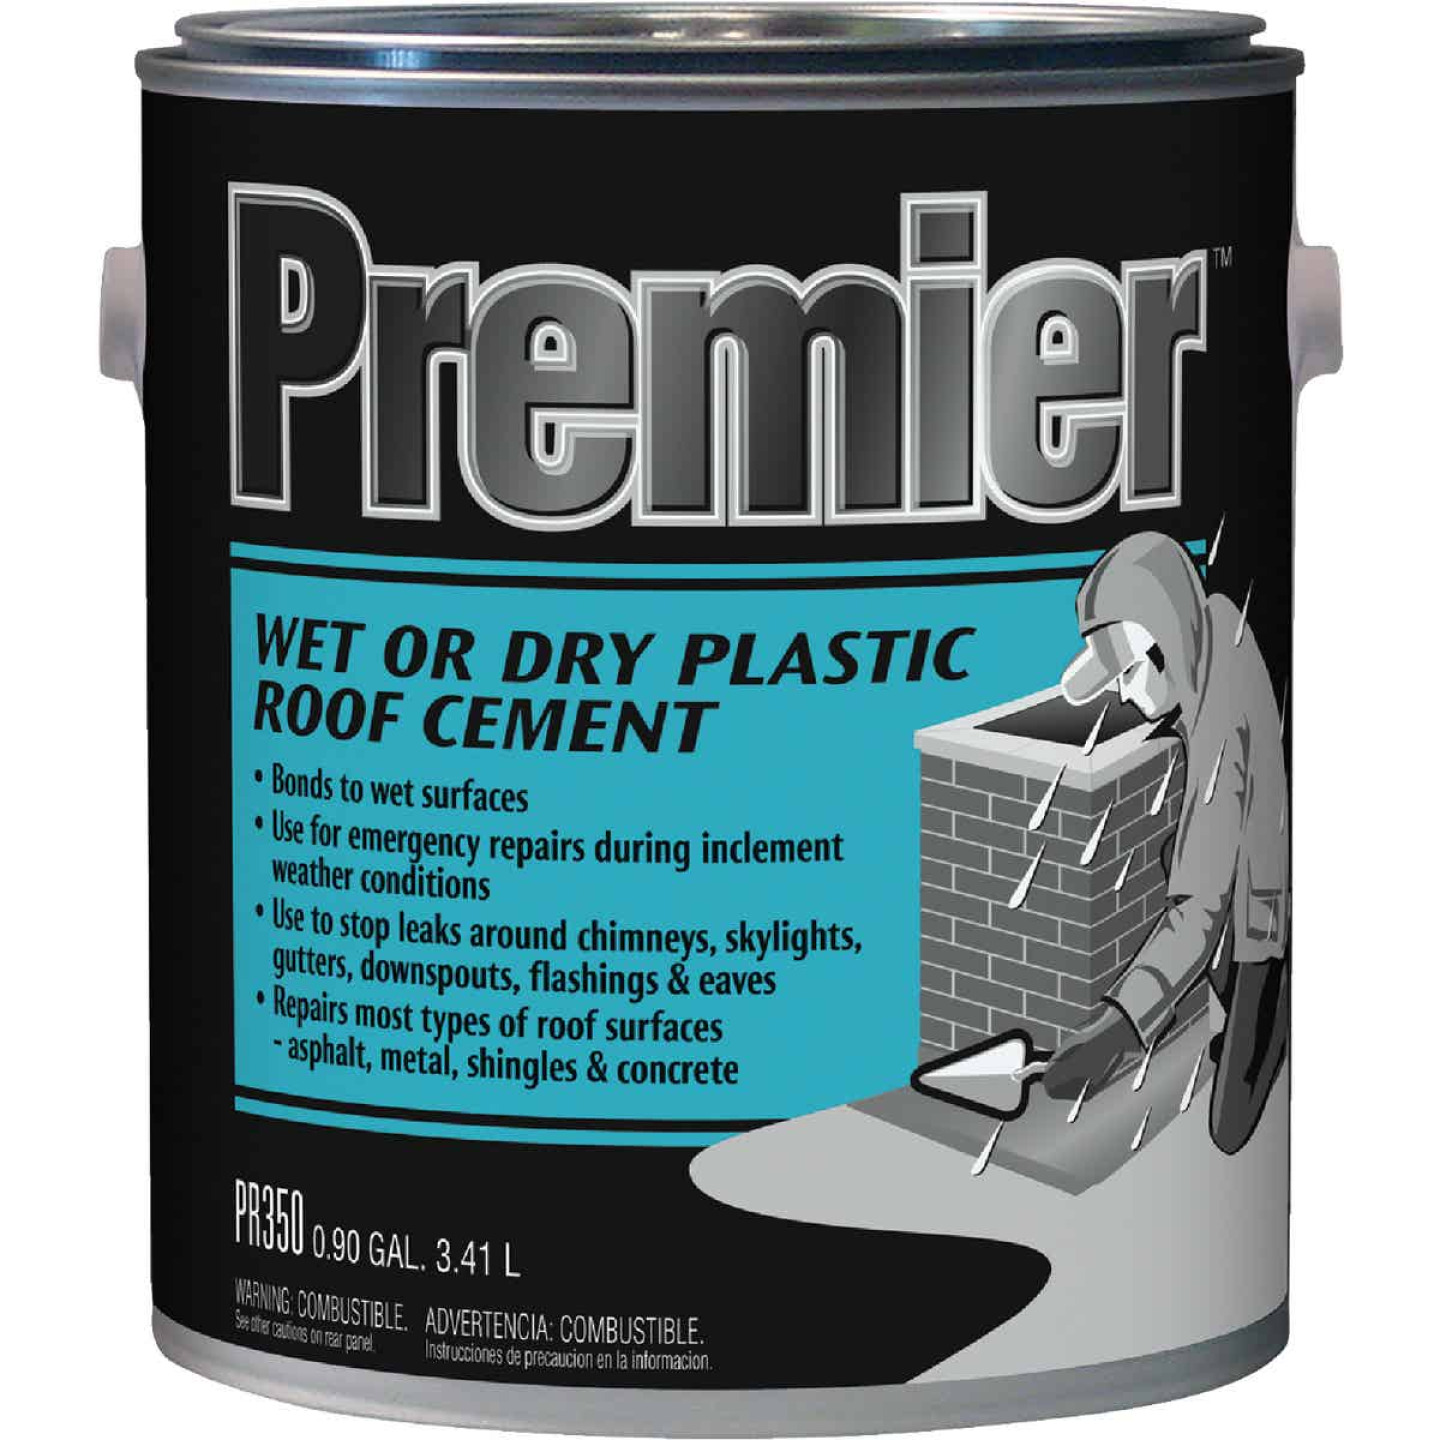 Premier 350 1 Gal. Wet or Dry Plastic Roof Cement Image 1